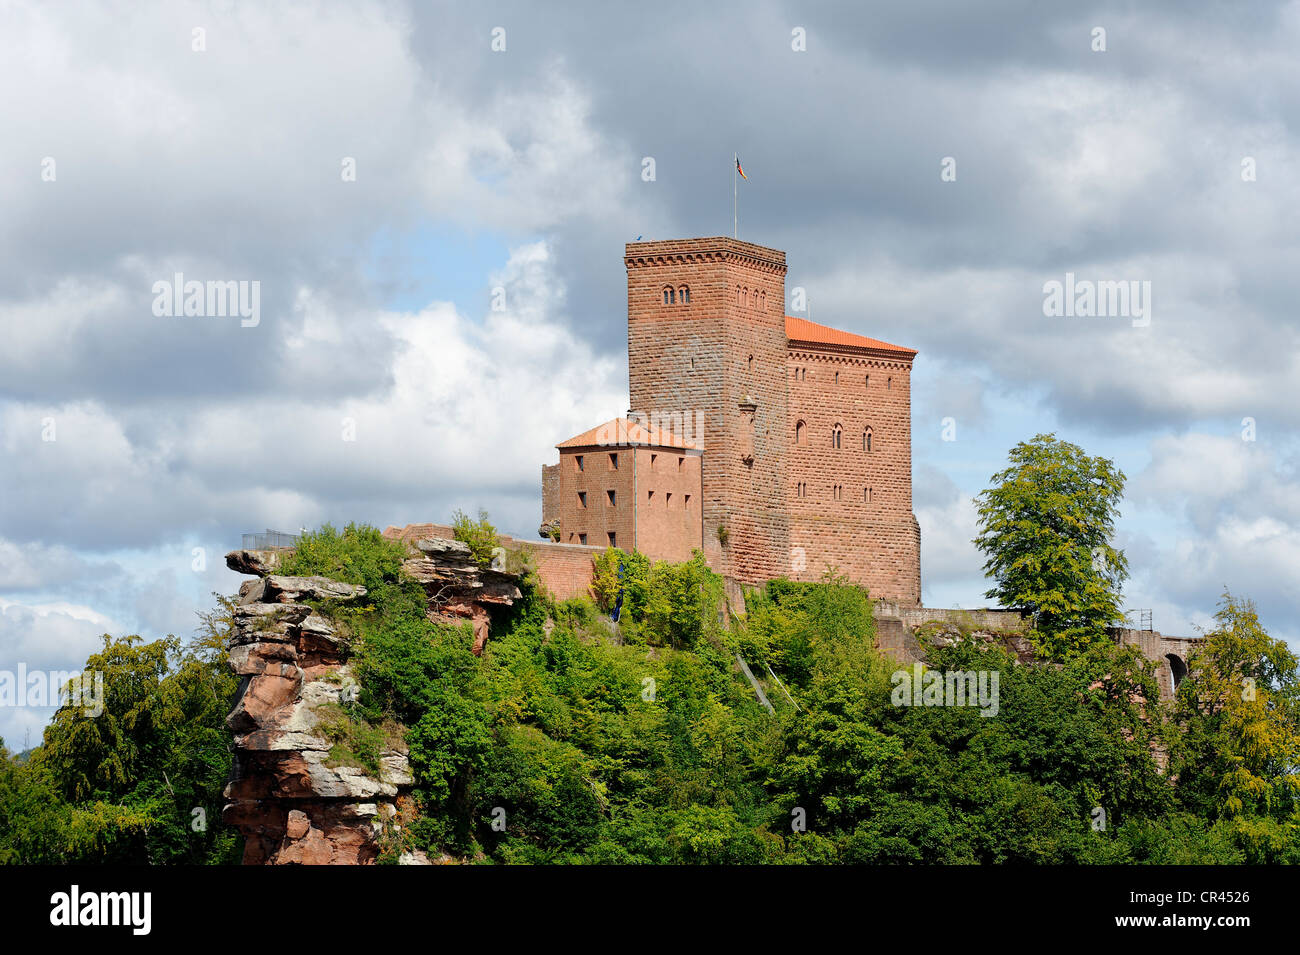 burg trifels castle near annweiler am trifels german wine route stock photo royalty free image. Black Bedroom Furniture Sets. Home Design Ideas